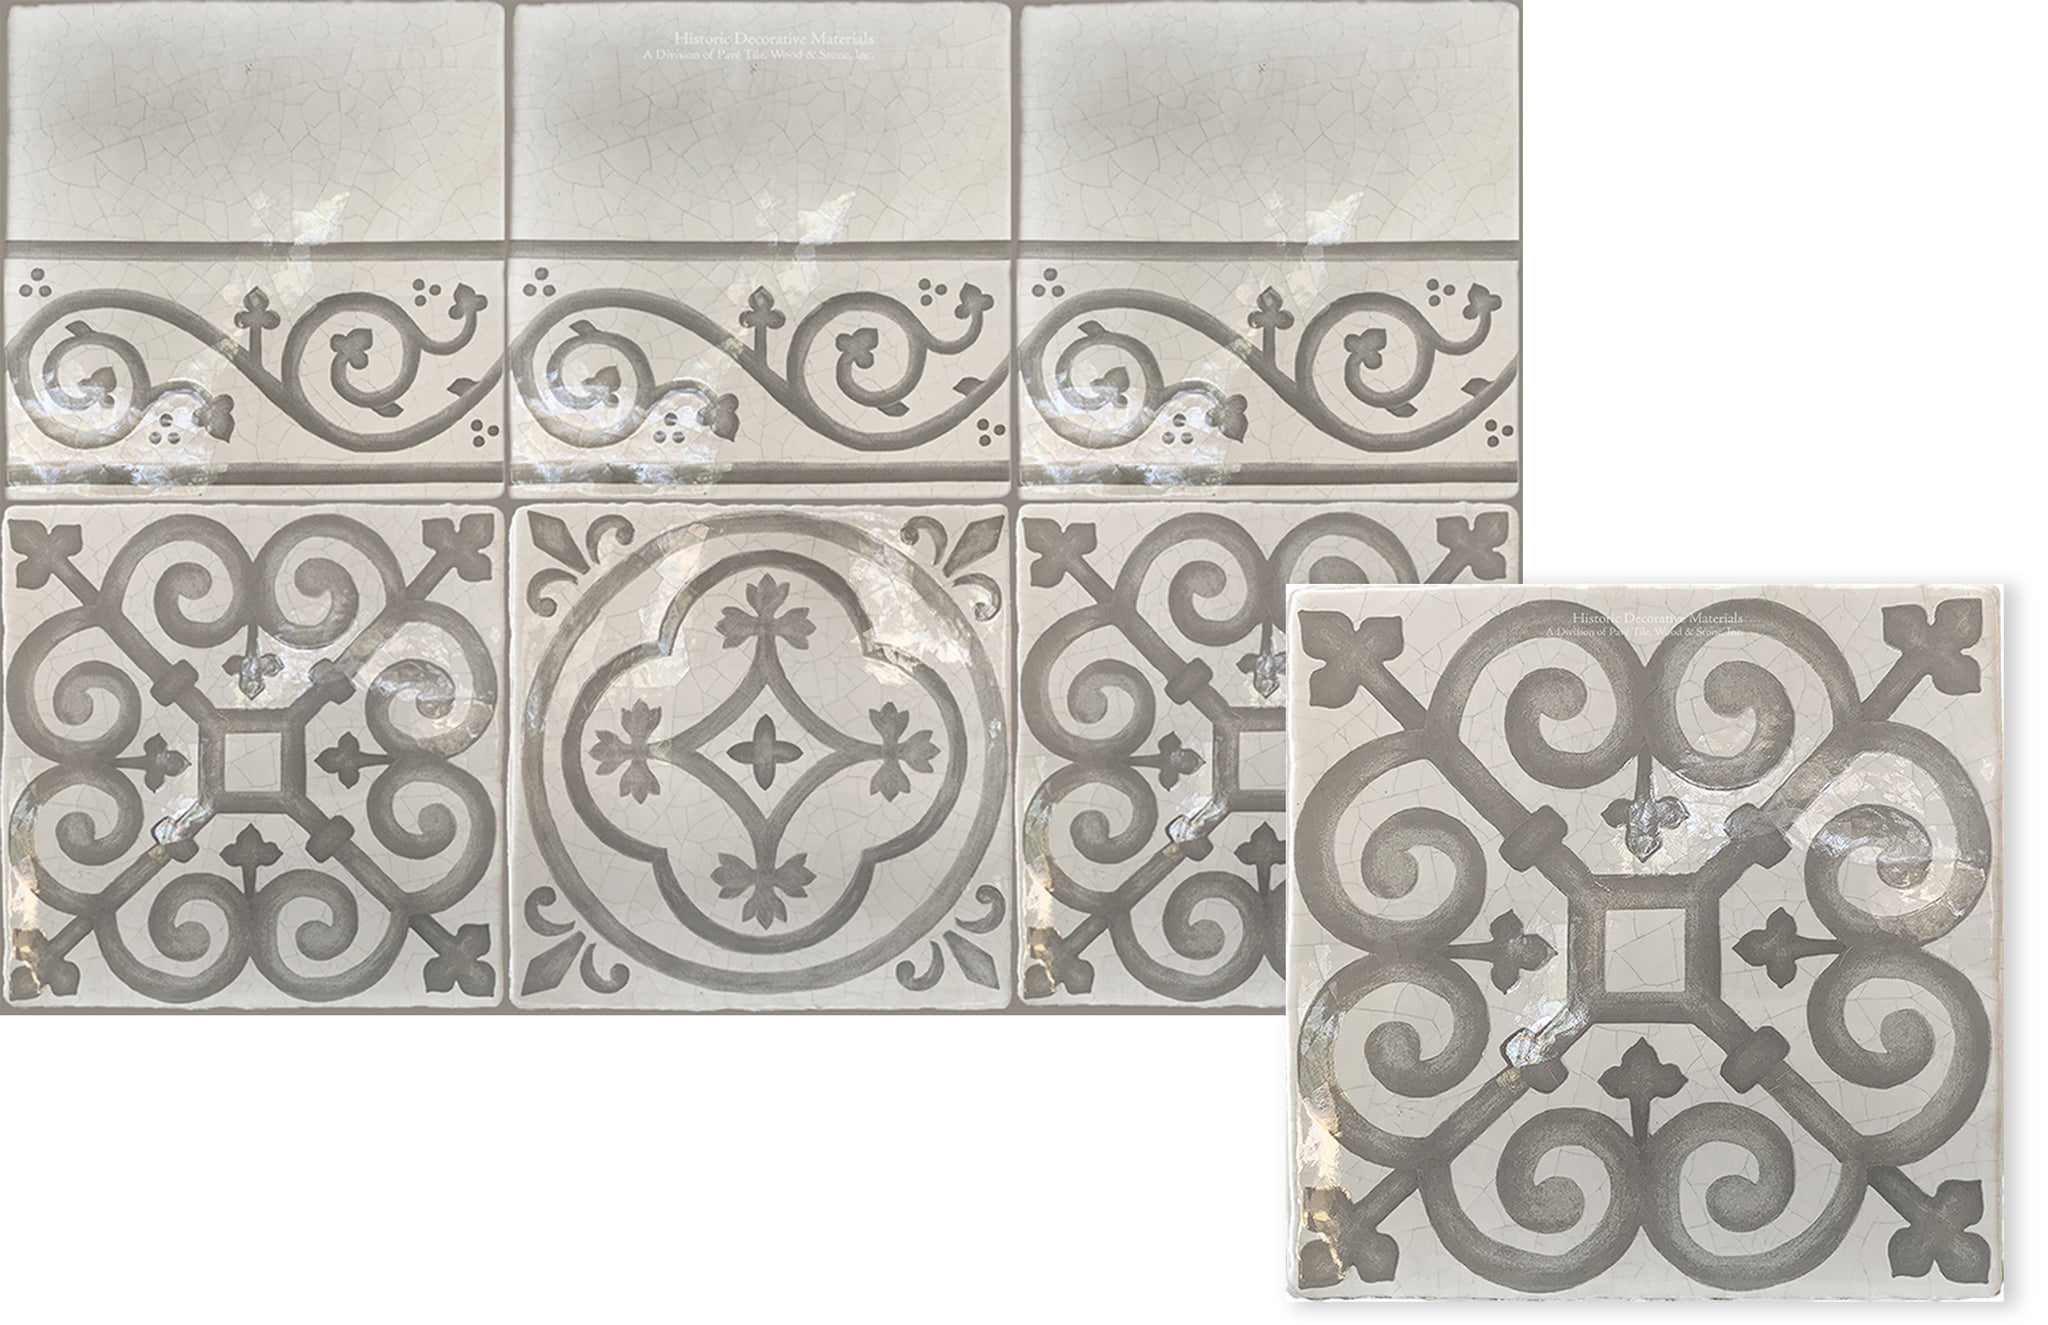 Historic Decorative hand painted wall tiles that are pattern wall tiles for kitchen backsplash, bathroom wall tiles, fireplace surround tiles that interior designers use for luxury, old world and farmhouse interiors